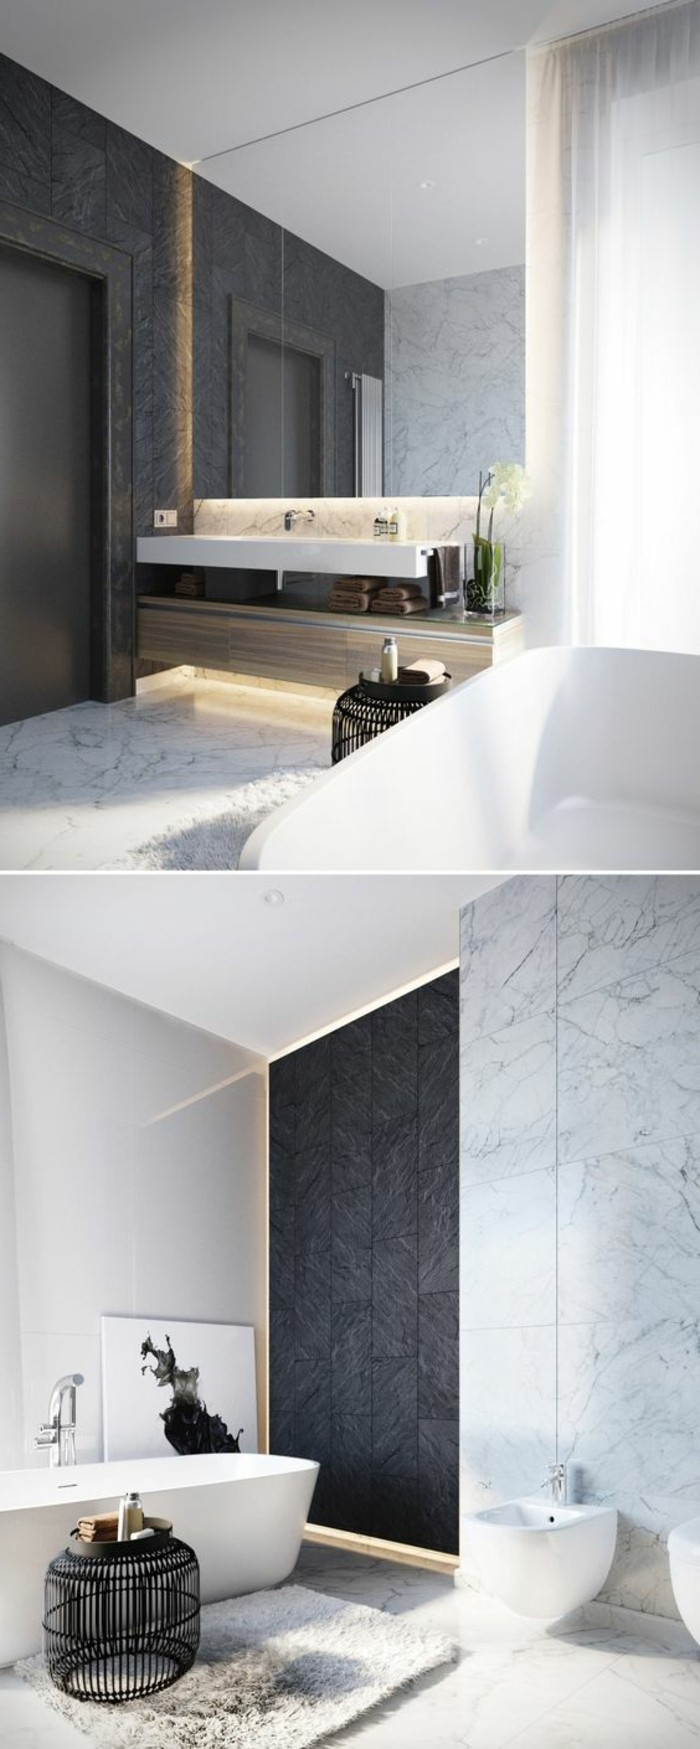 idee faience italienne 28 images idee deco salle de bain pour mon carrelage je voudrai le. Black Bedroom Furniture Sets. Home Design Ideas